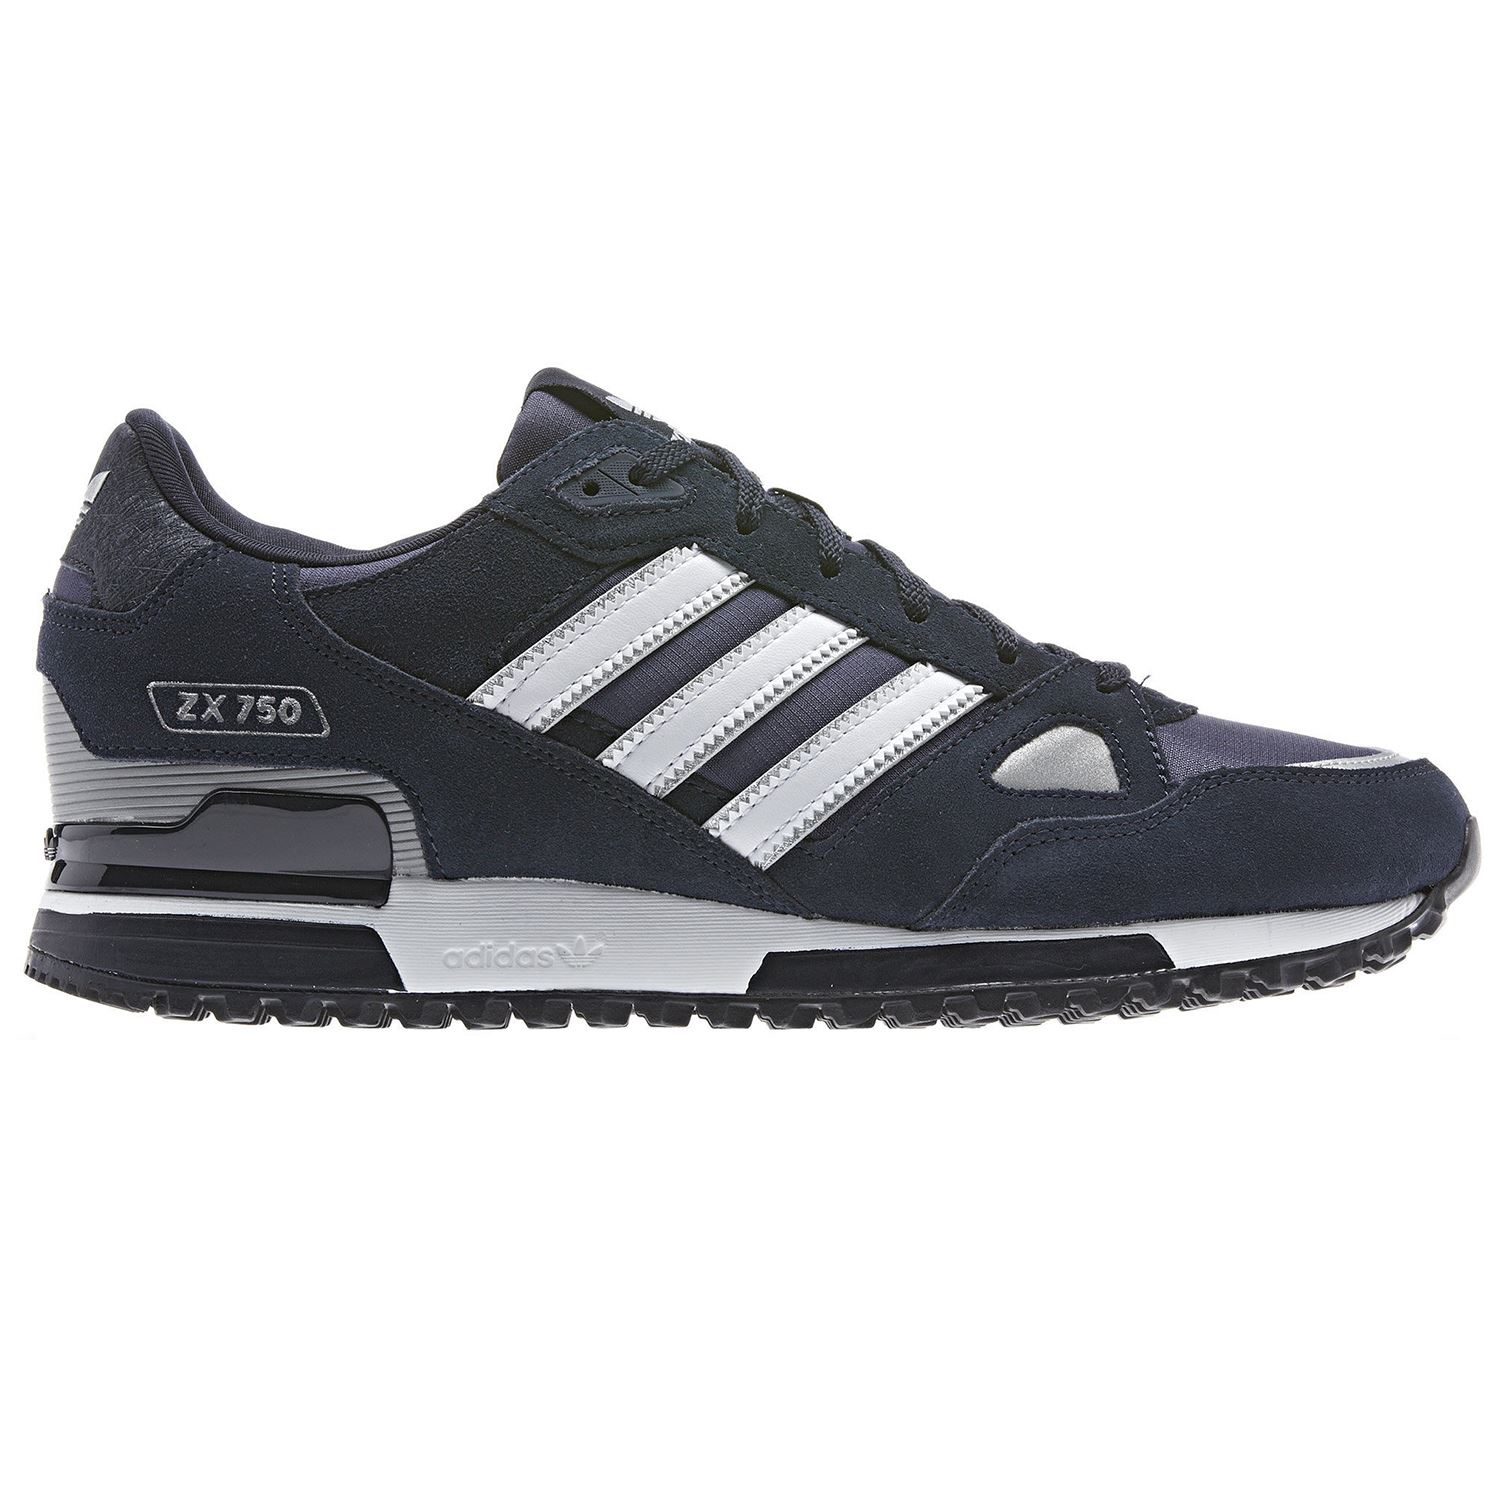 Details about ADIDAS ORIGINALS ZX 750 MENS RUNNING TRAINERS BLUE BLACK NAVY SNEAKERS SHOES NEW